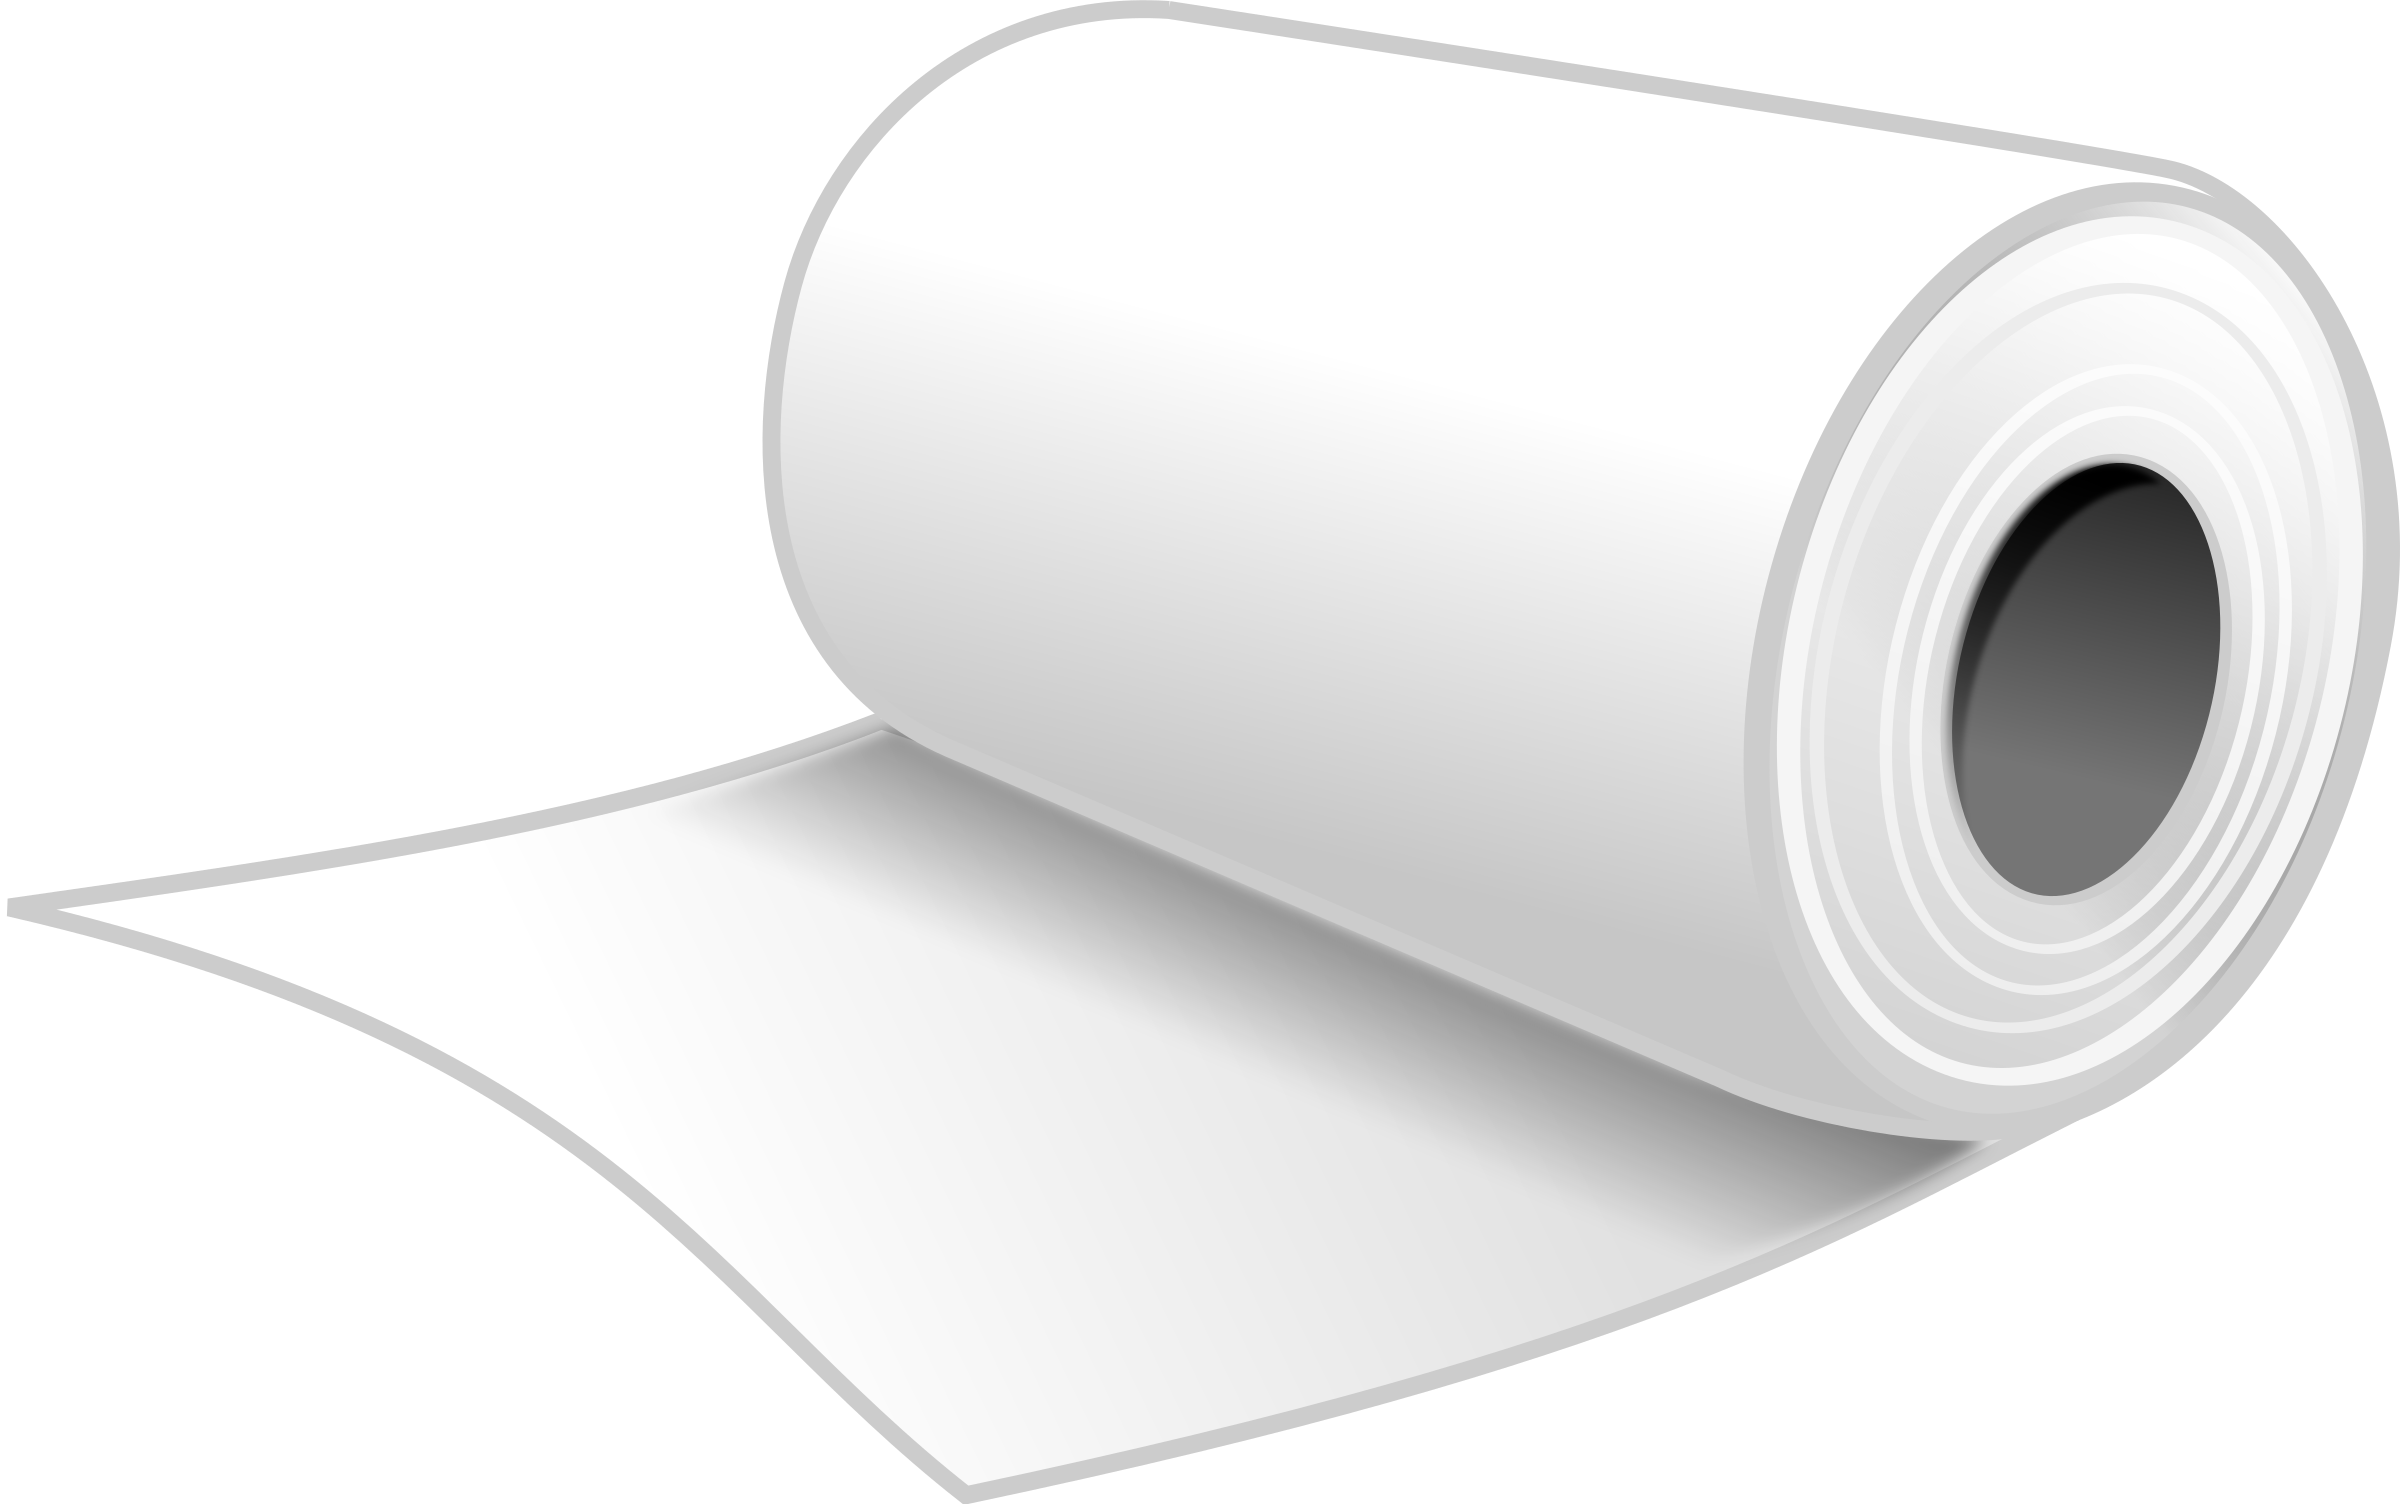 Rolled newspaper png. Paper roll icons free